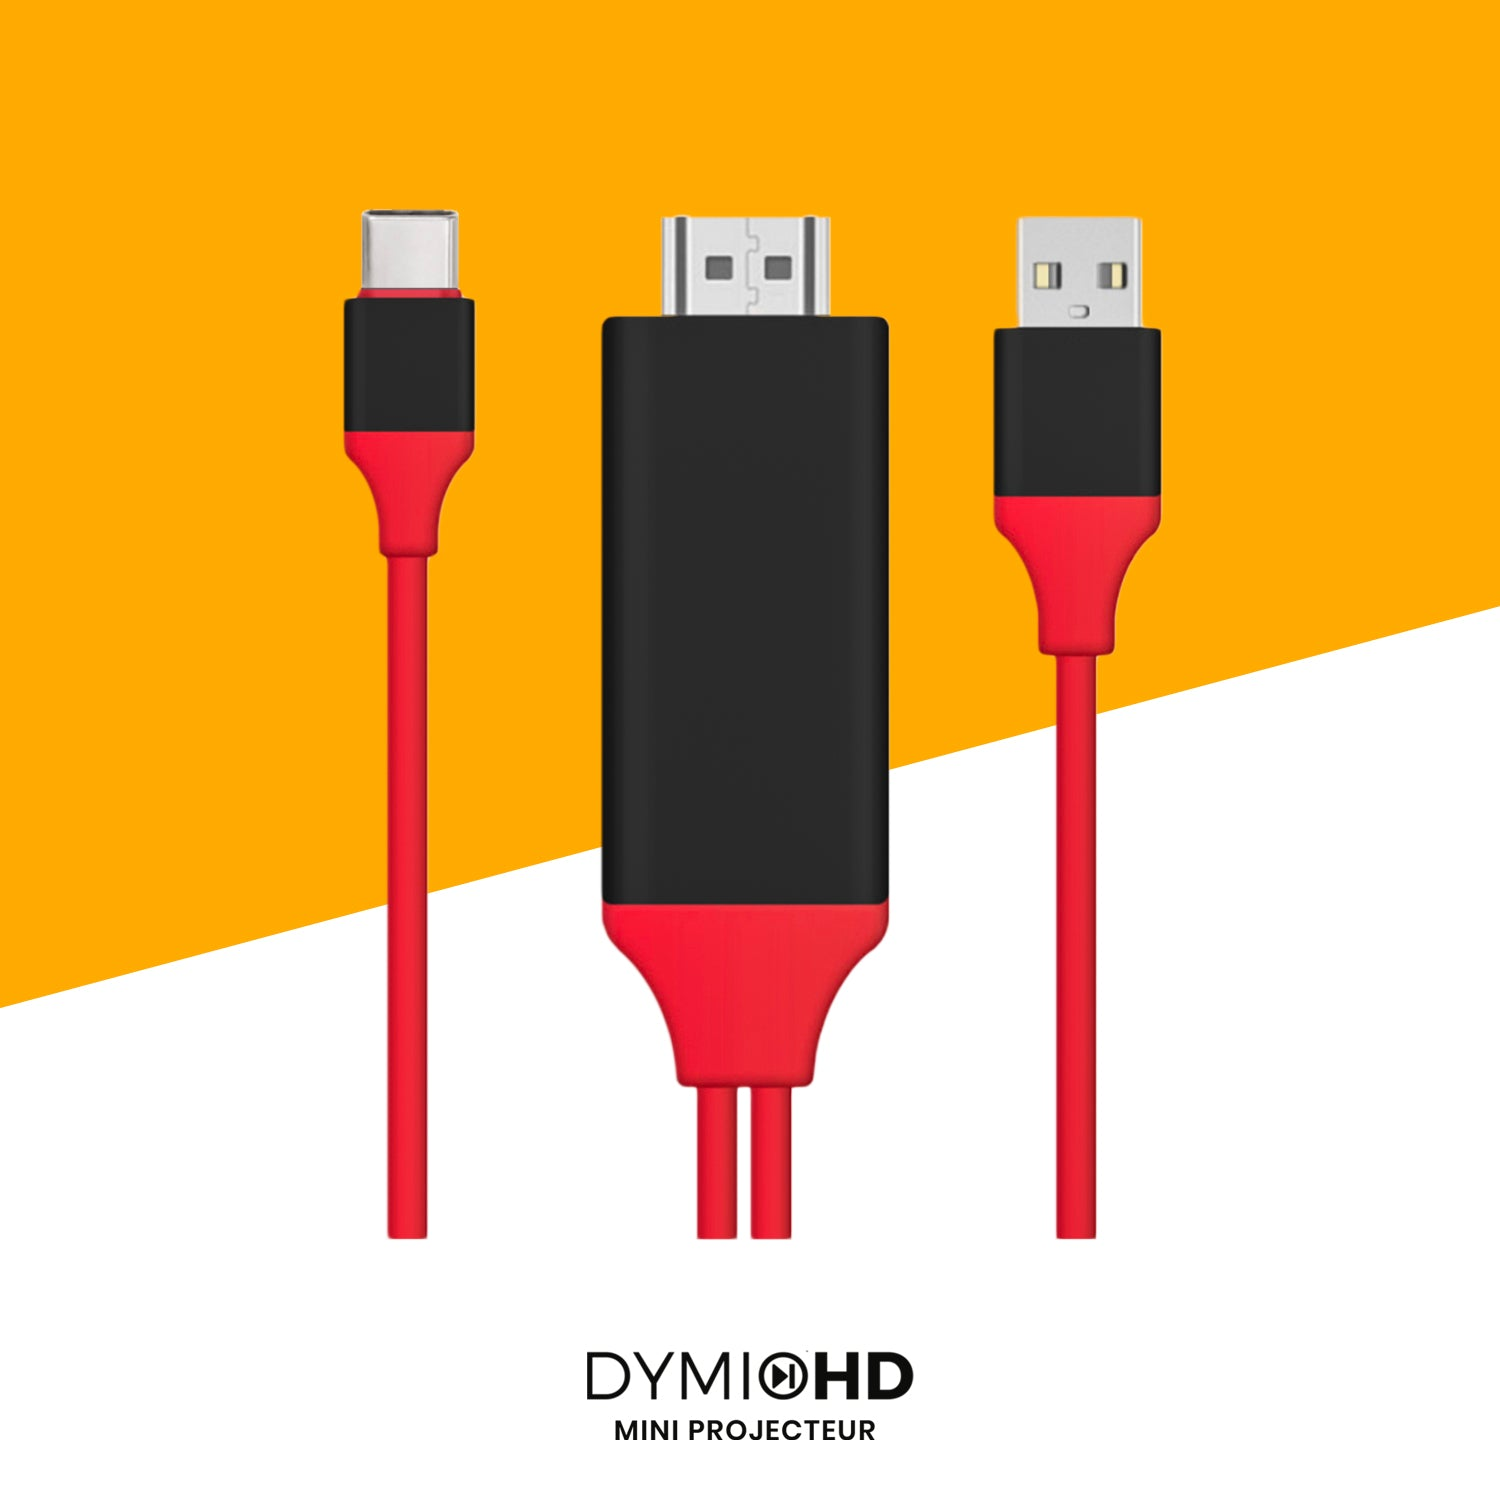 adaptateur apple iPhone HDMI DymioHD